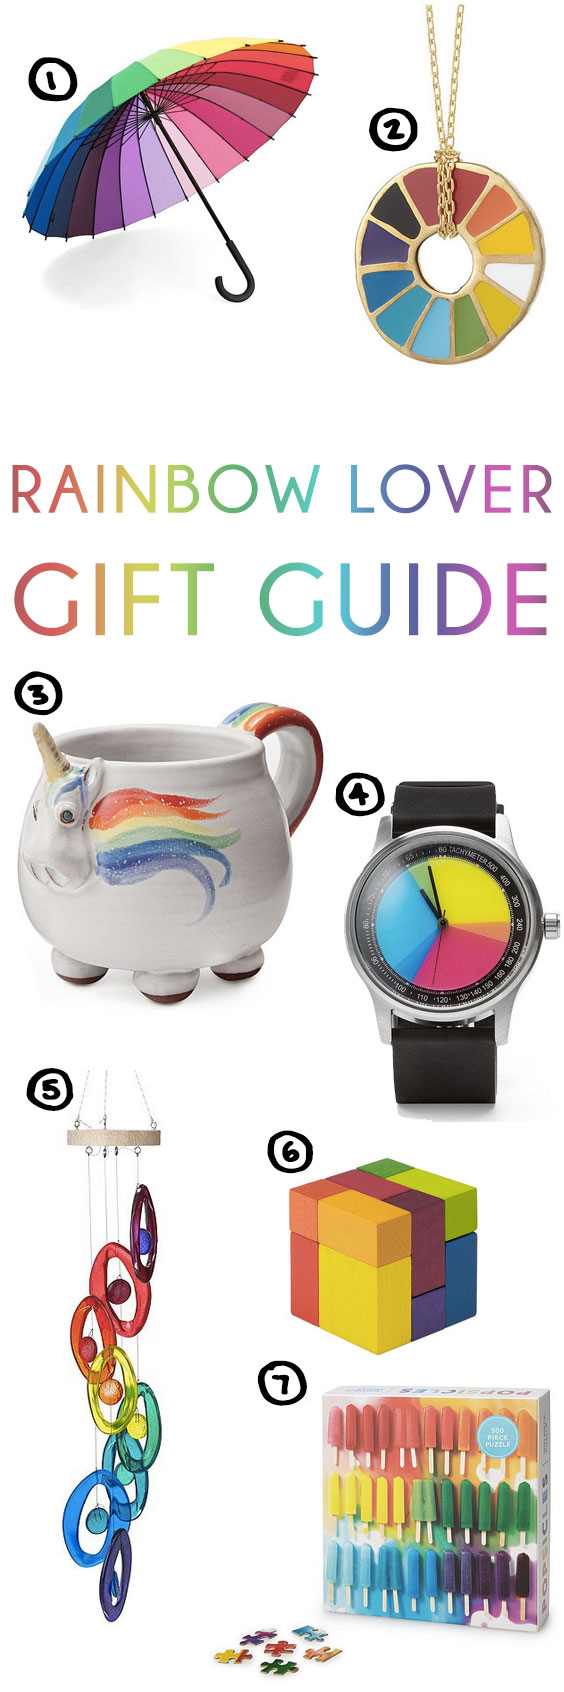 Gift Guide For The Rainbow Lover In Your Life